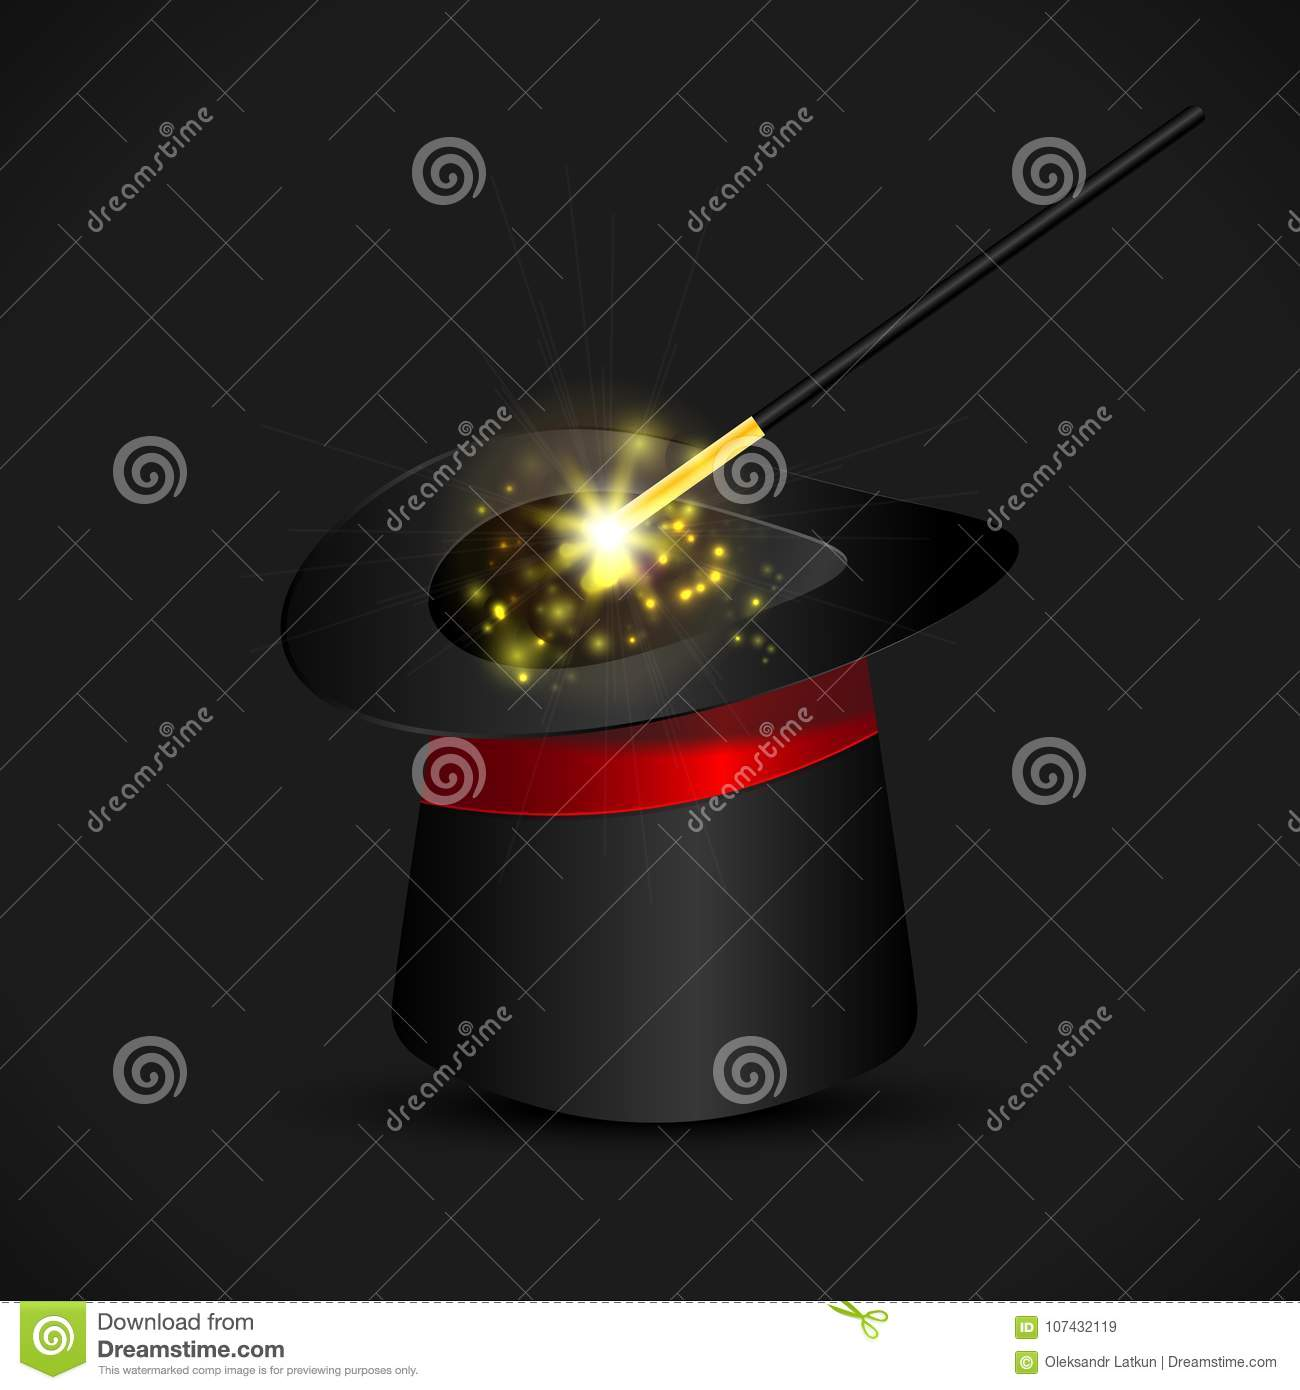 Magic hat and wand with sparkles, magical glow. Vector